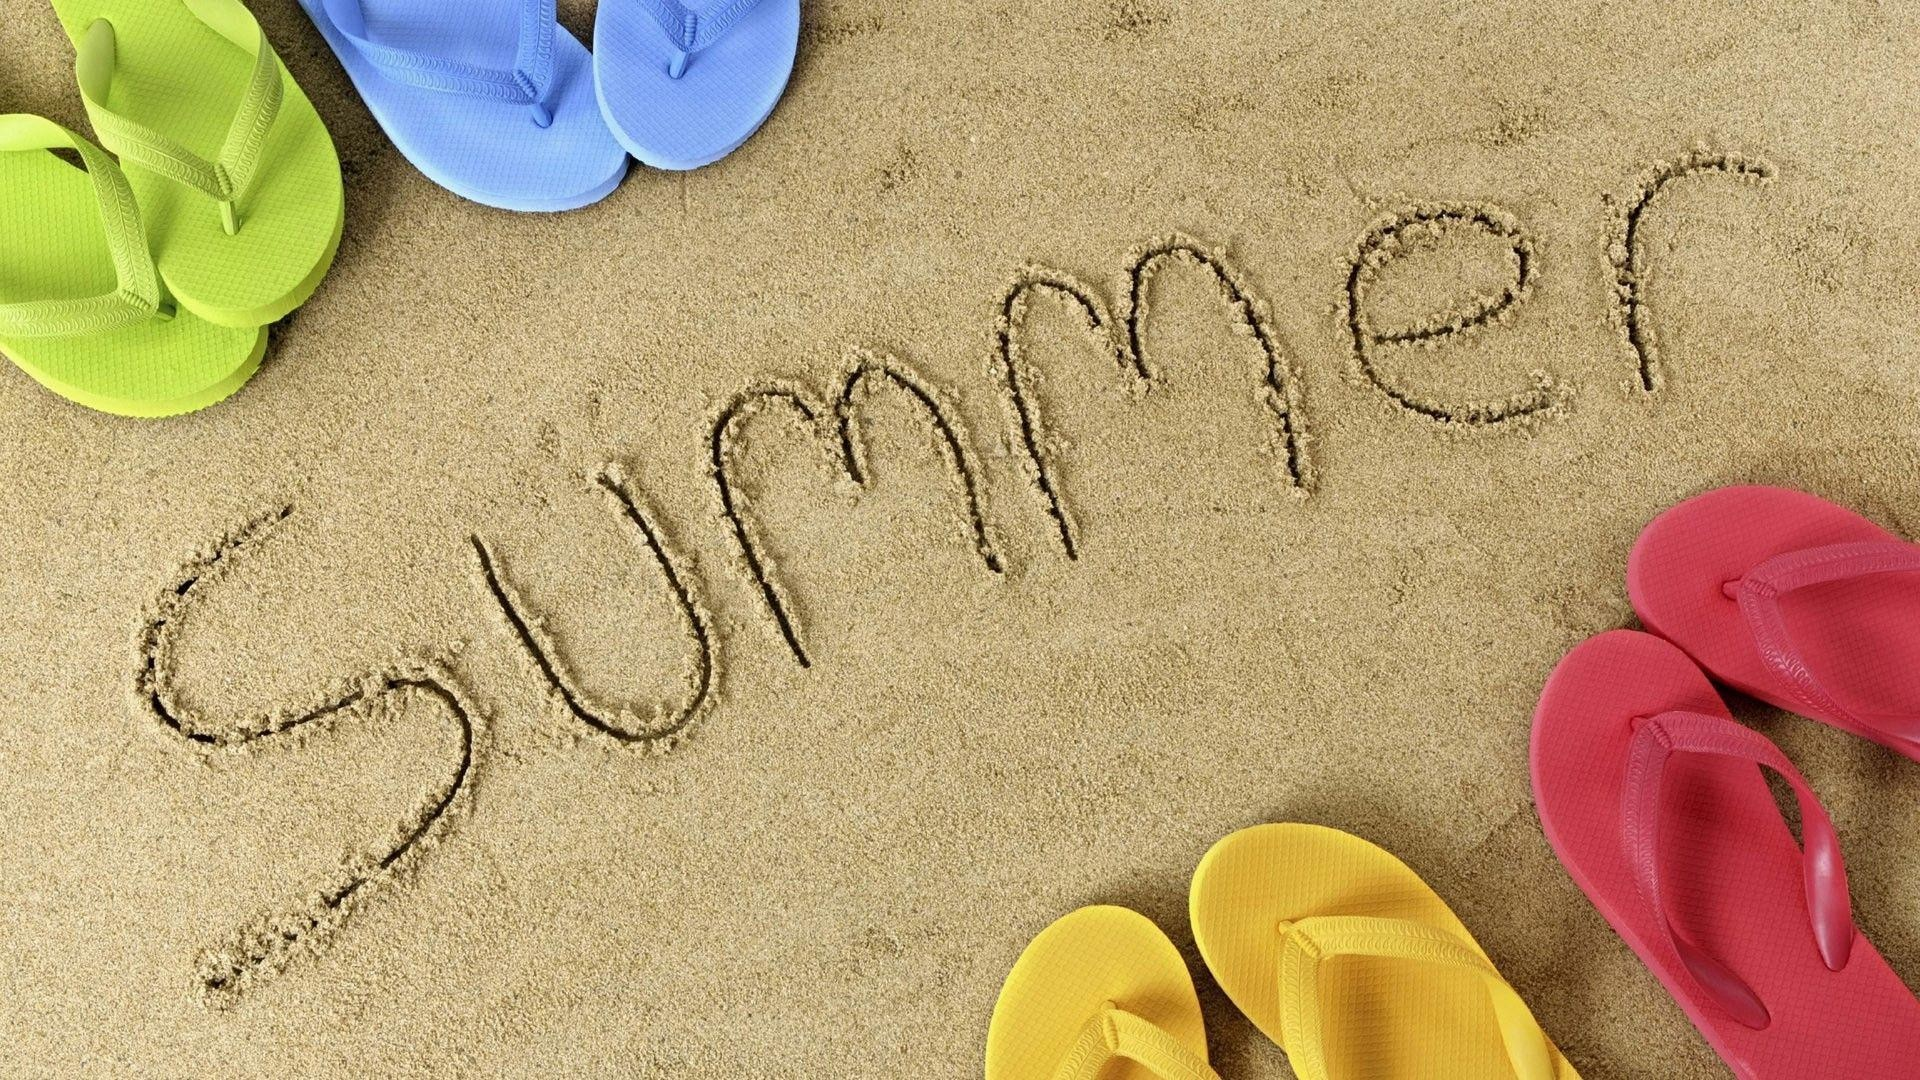 Cute Summer Wallpapers 55 images 1920x1080